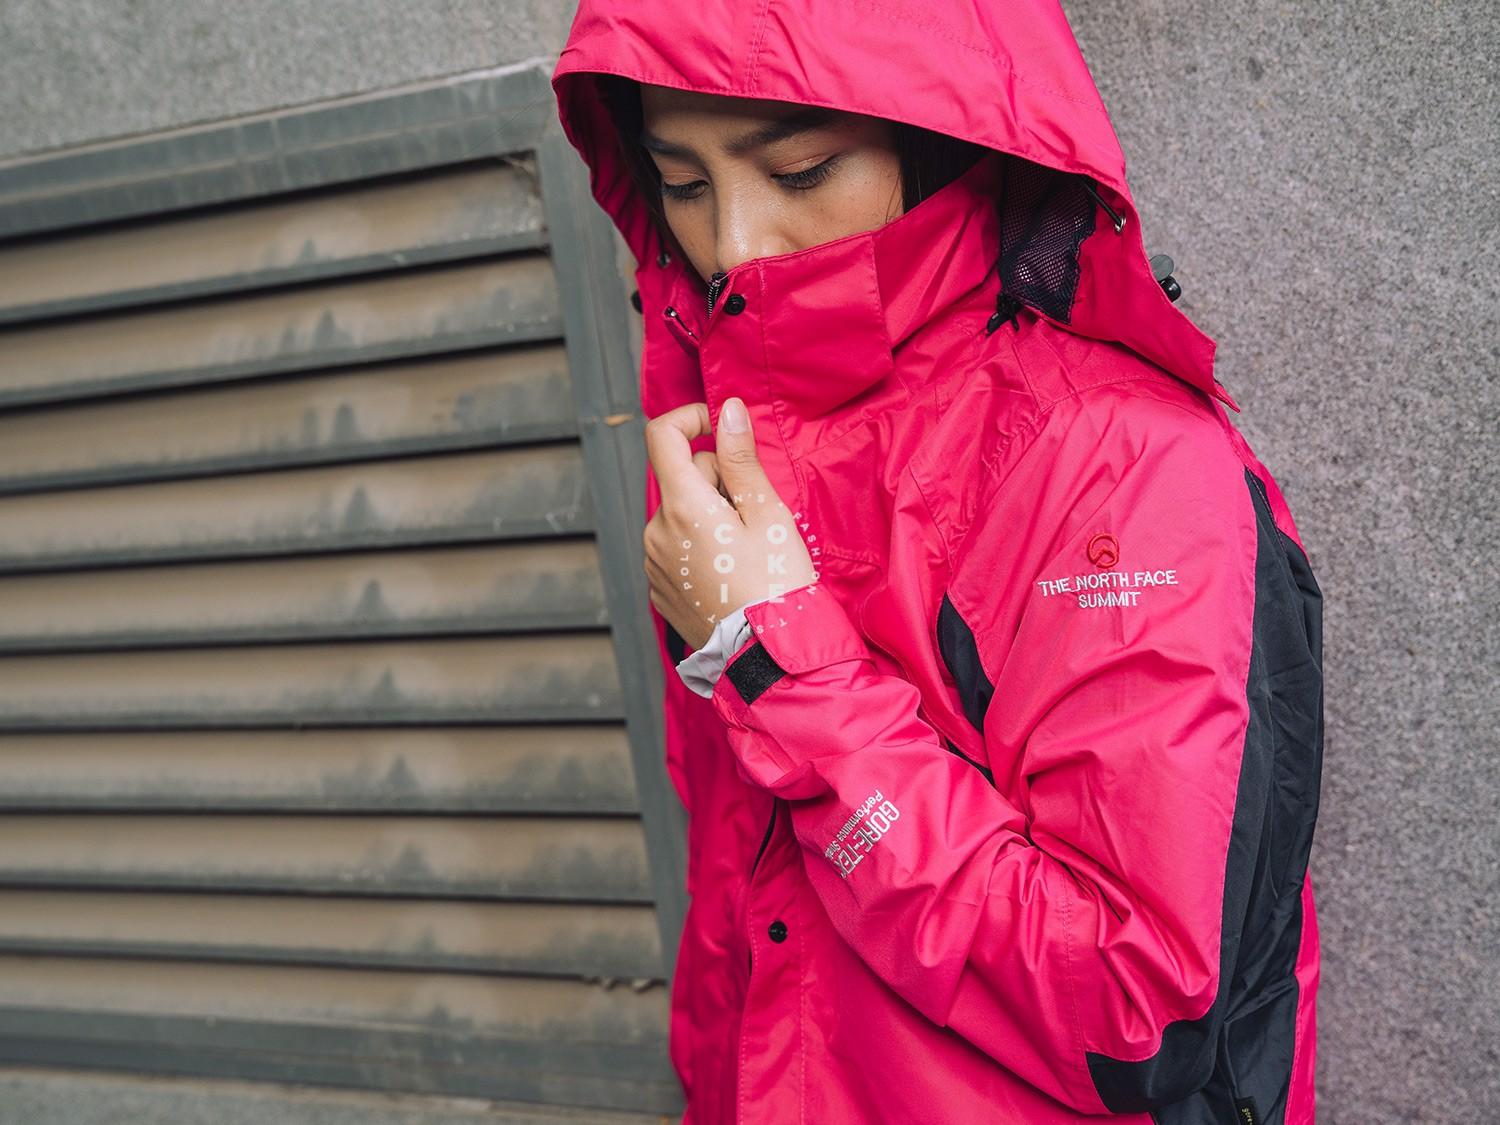 The North Face Stretch Powderflo Jacket - Pink & Black (Women's)